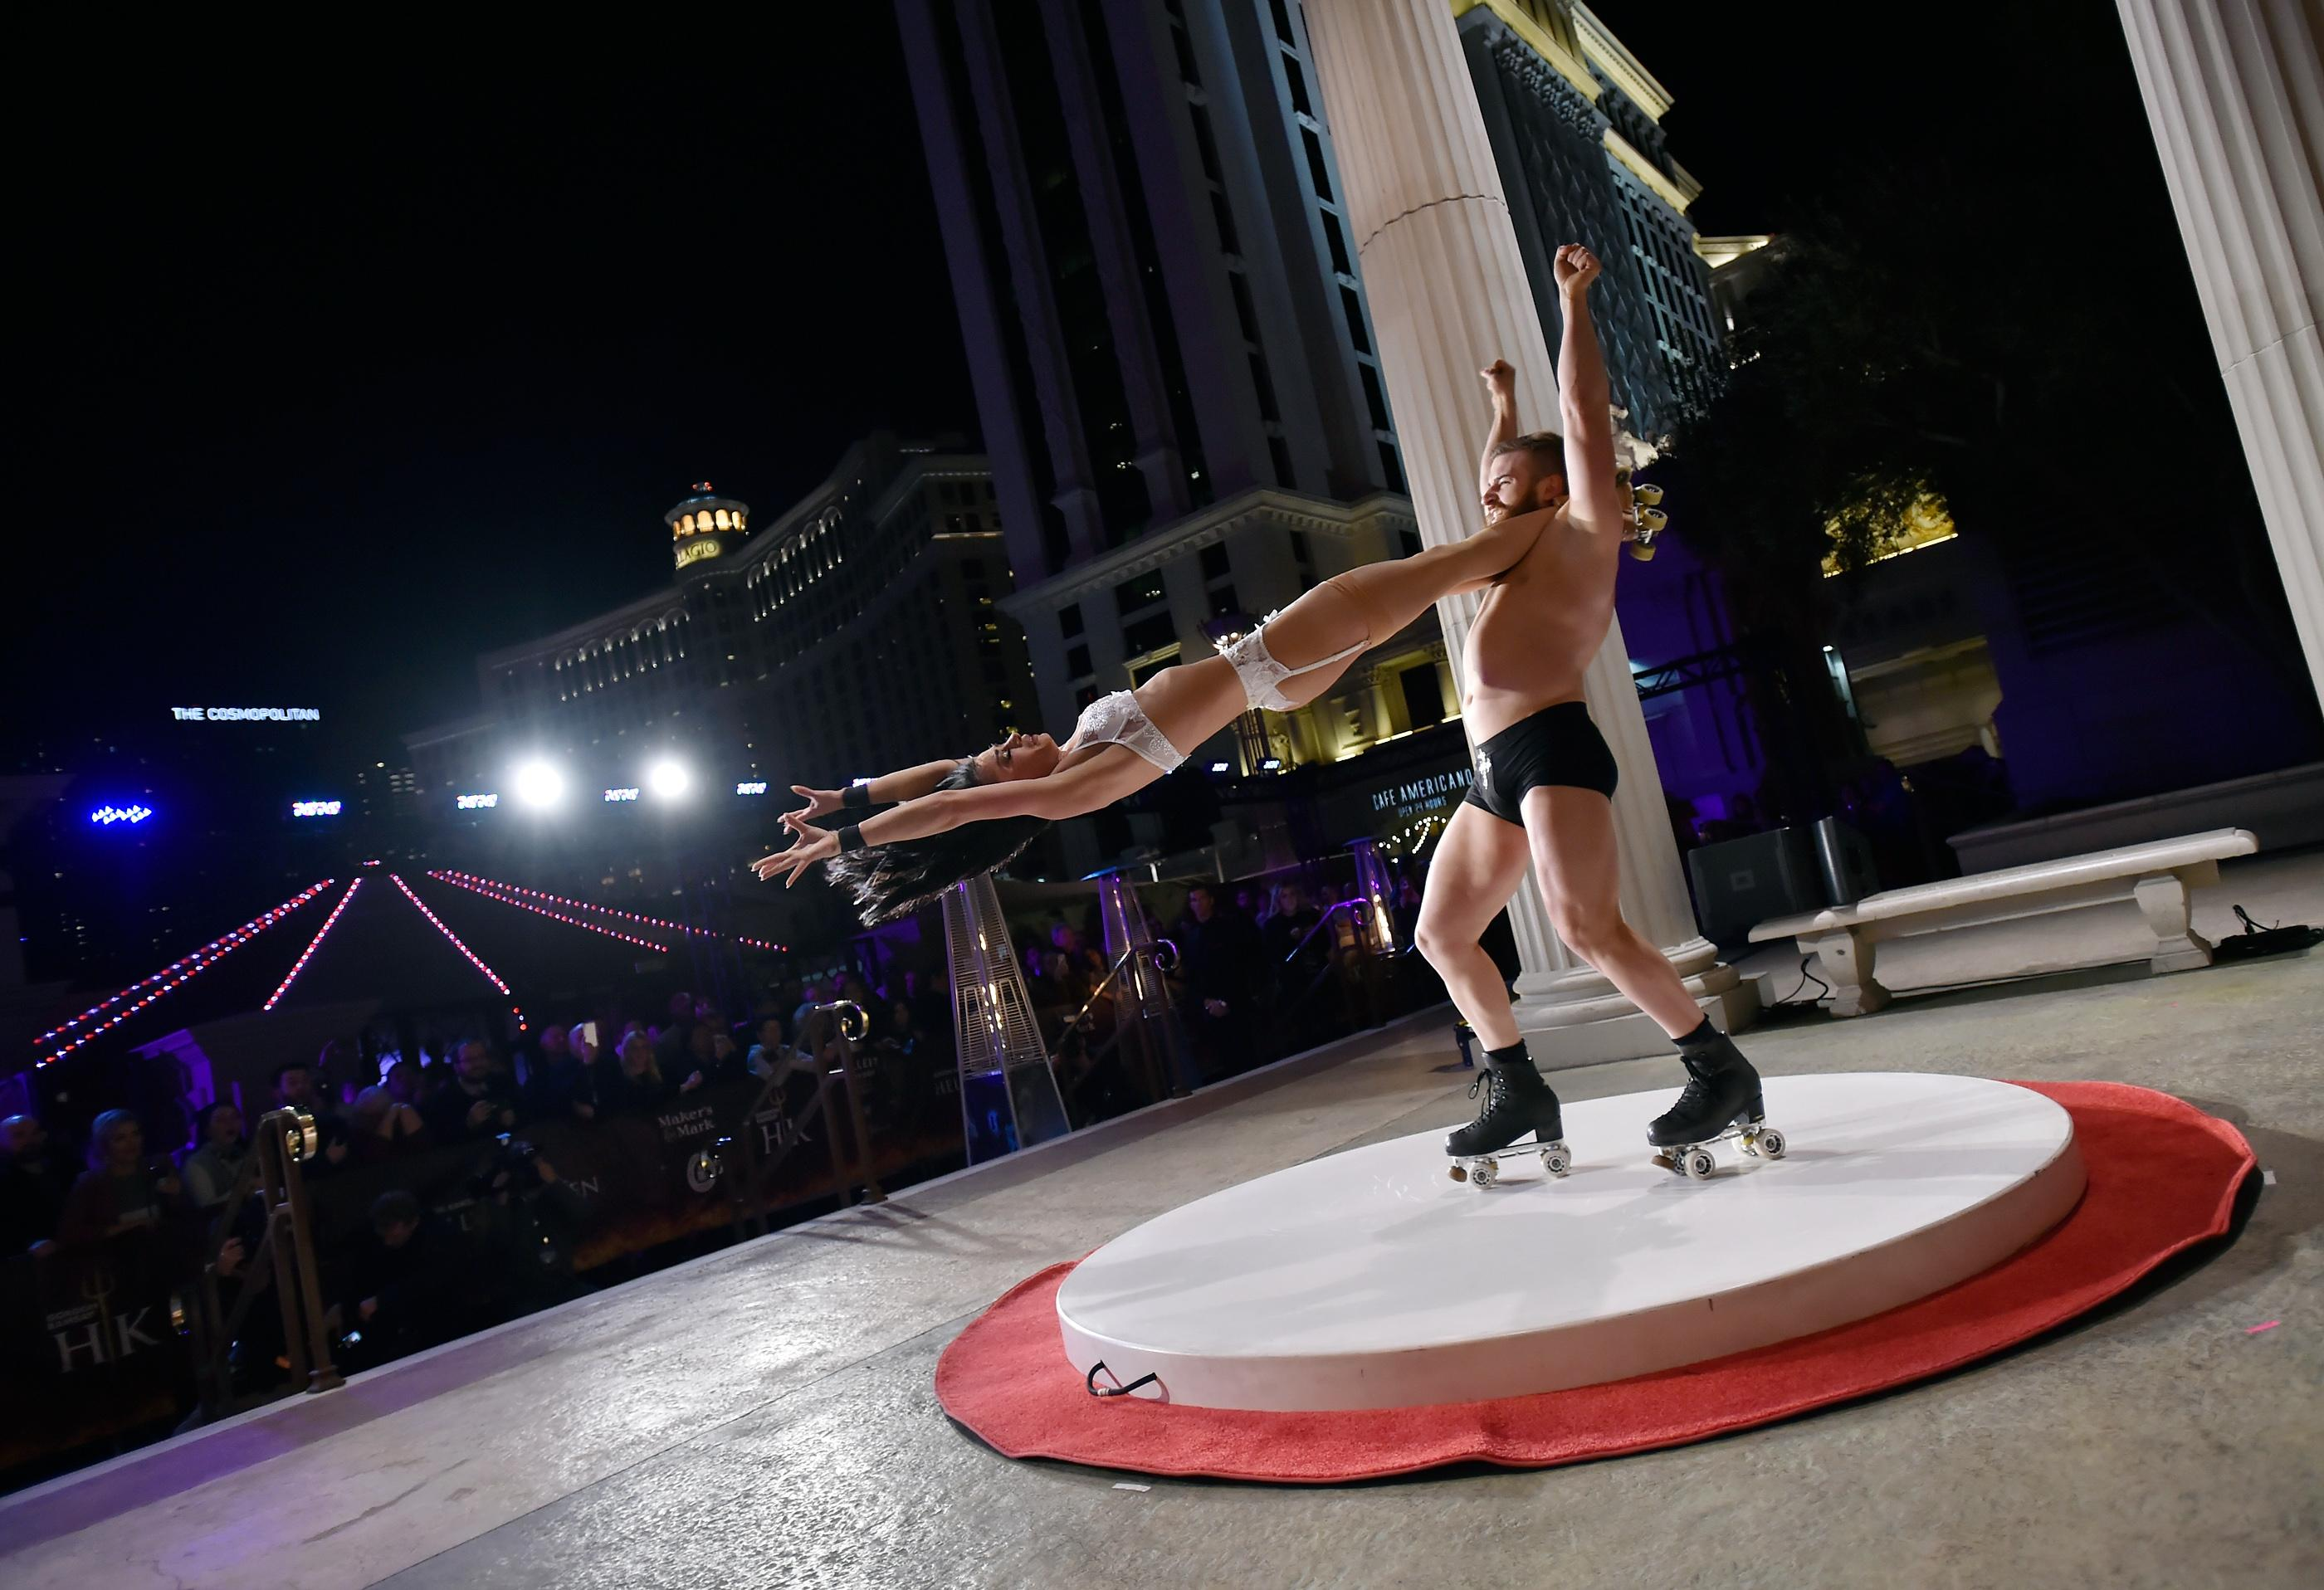 Roller skaters Emily England, left, and Billy England from the show 'Absinthe' perform during the grand opening of Gordon Ramsay Hell's Kitchen at Caesars Palace Friday, Jan. 26, 2018, in Las Vegas. CREDIT: David Becker/Las Vegas News Bureau